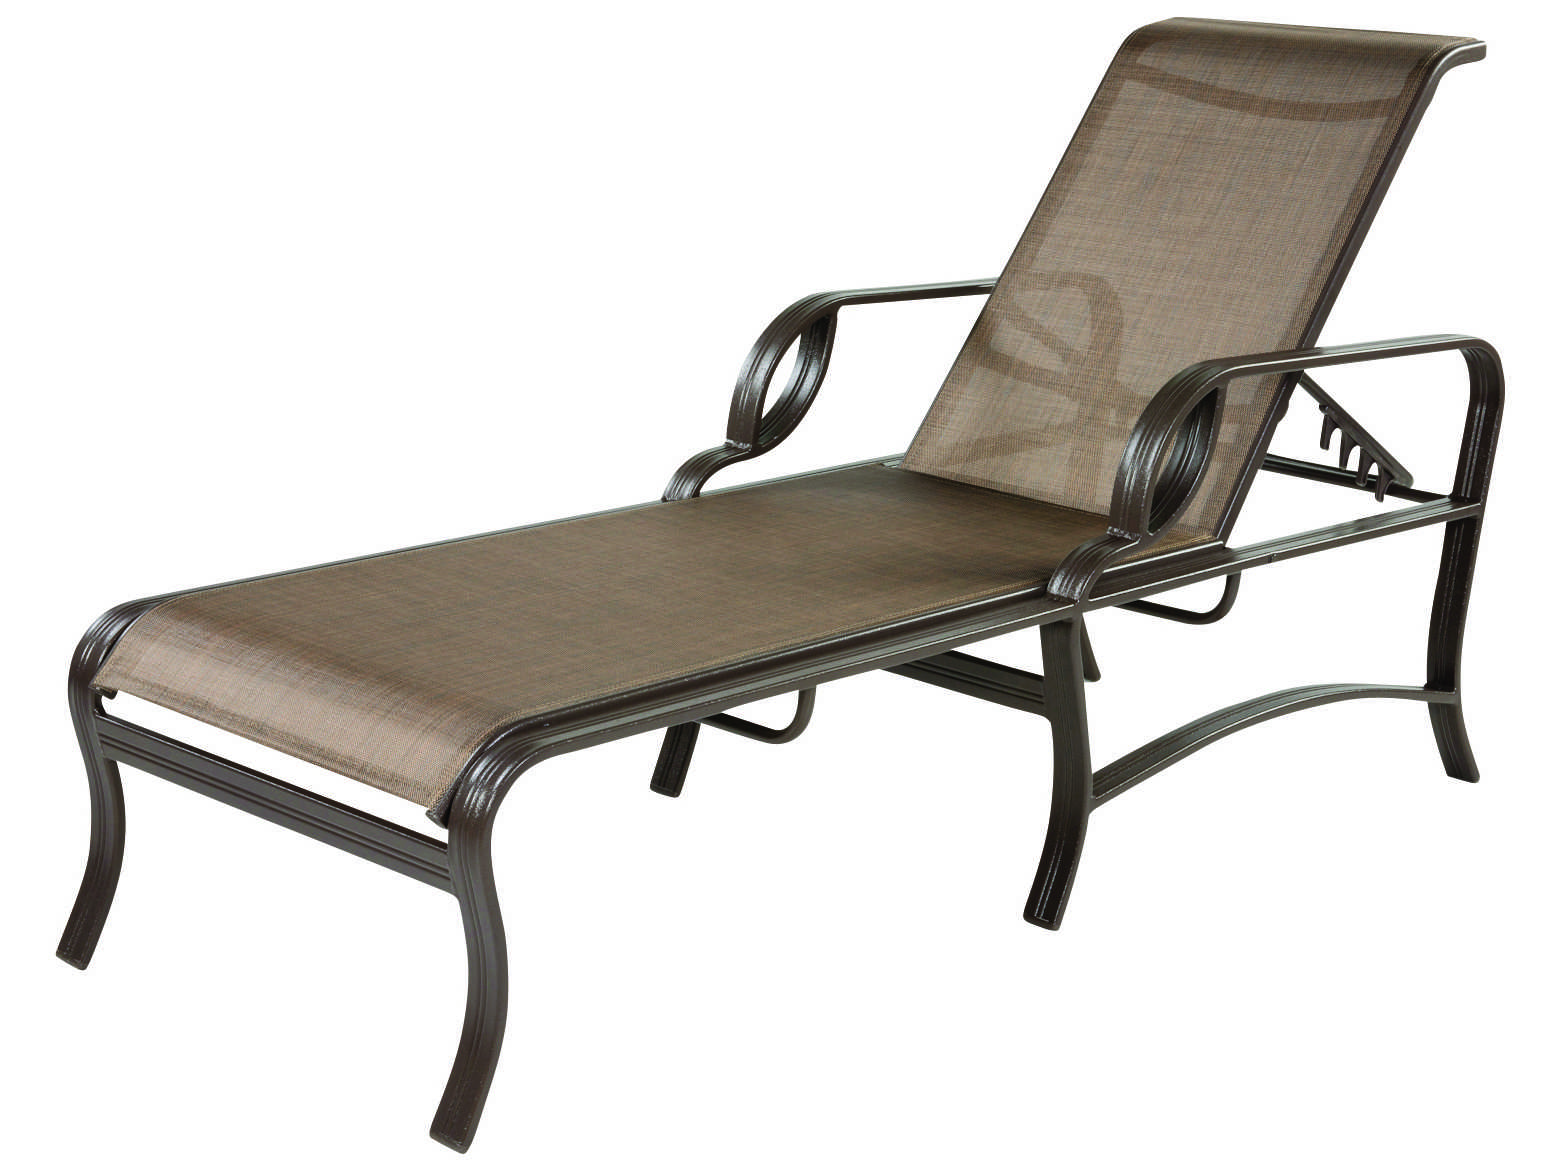 Windward design group eclipse sling cast aluminum chaise for Cast aluminum chaise